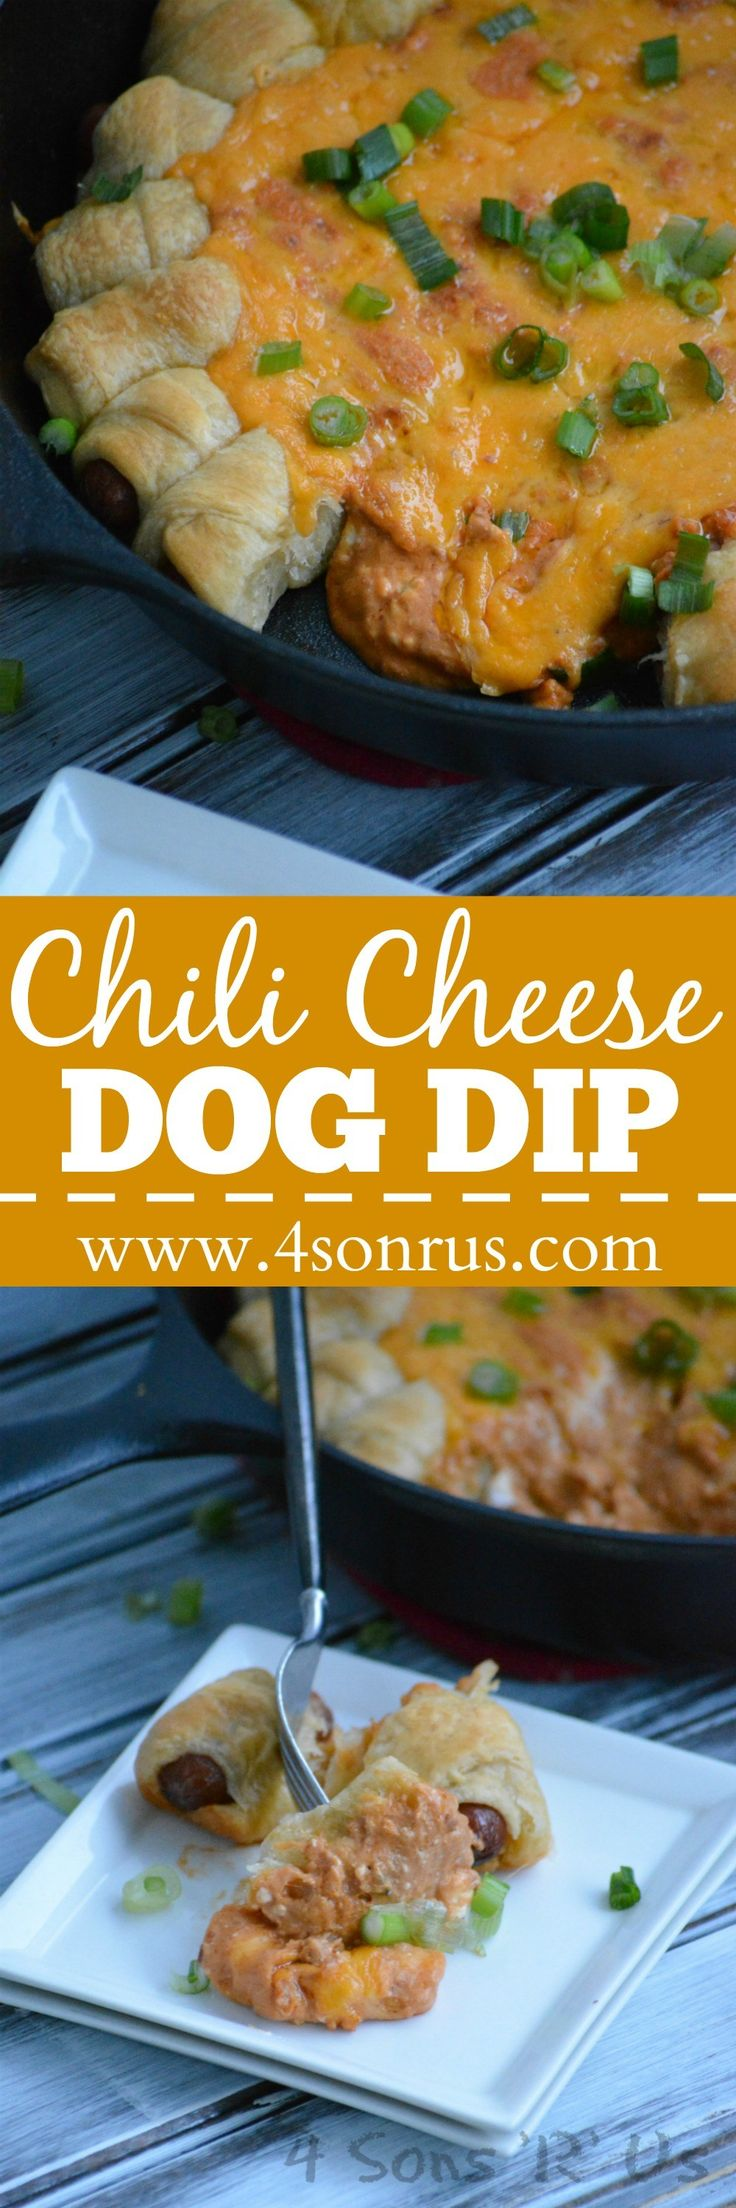 Creamy chili cheese dip is baked in the center of a pull apart ring of classic pigs in a blanket for an irresistible game day recipe. Have your team looking forward to this Chili Cheese Dog Pull Apart Dip appetizer while you wait for game time.